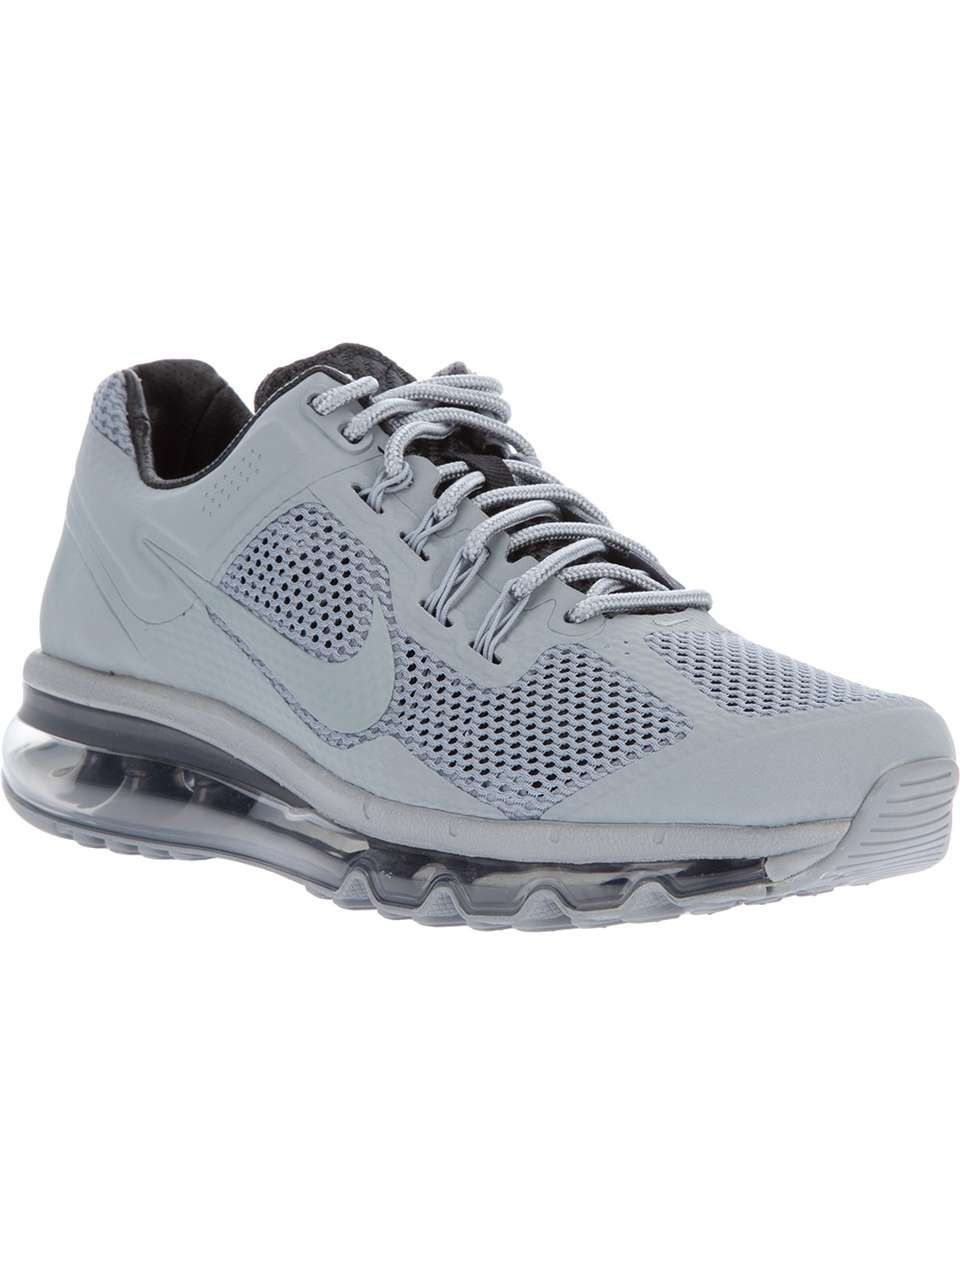 separation shoes 444f6 8ef80 Nike  Air Max 2013  trainer. Nike  Air Max 2013  trainer Nike Basketball  Shoes, Sports ...